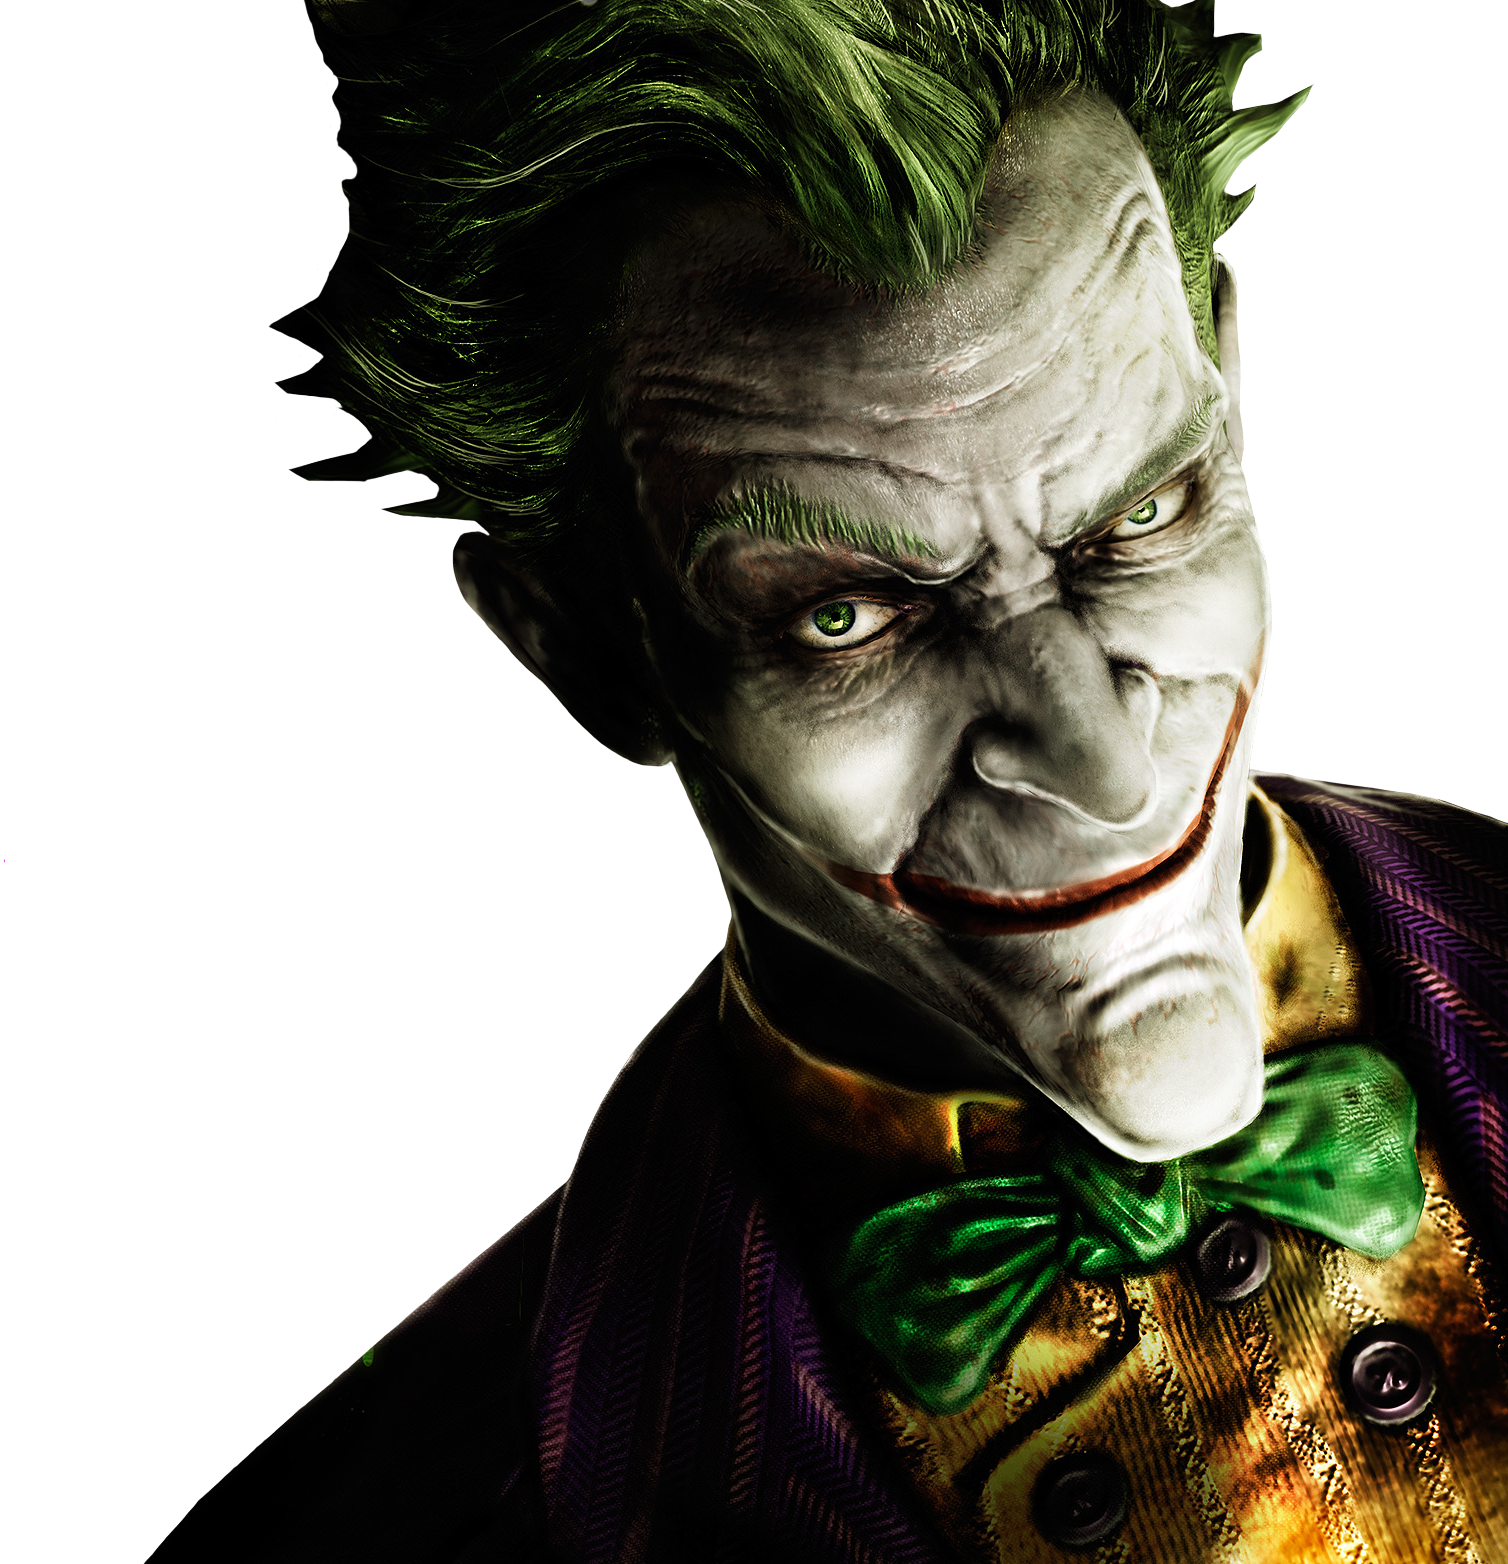 Joker Fondo De Pantalla Arkham Asylum 1508x1564 Download Hd Wallpaper Wallpapertip